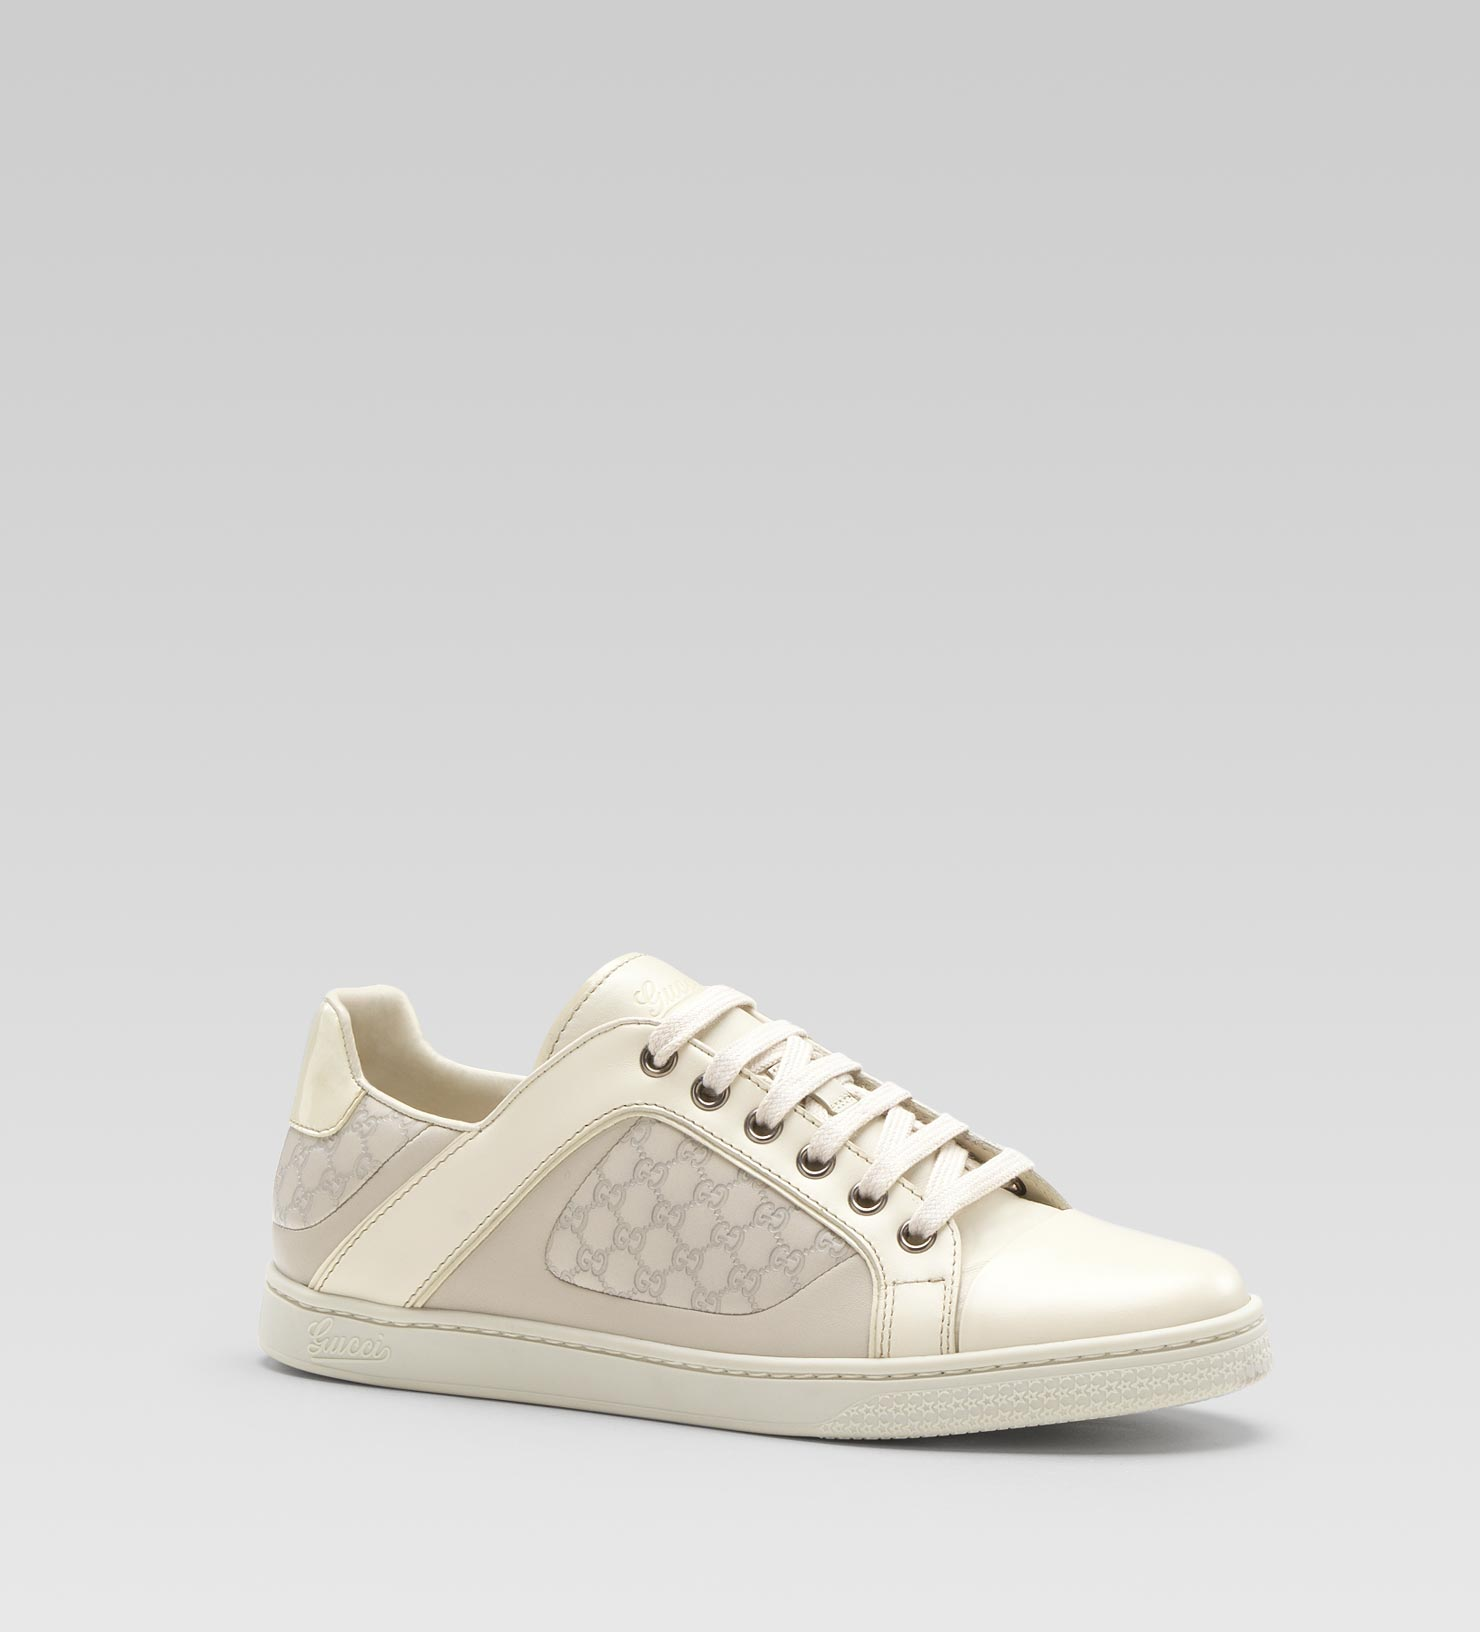 Lyst - Gucci Coda Pop Low Laceup Sneaker in White b5e0a8f115